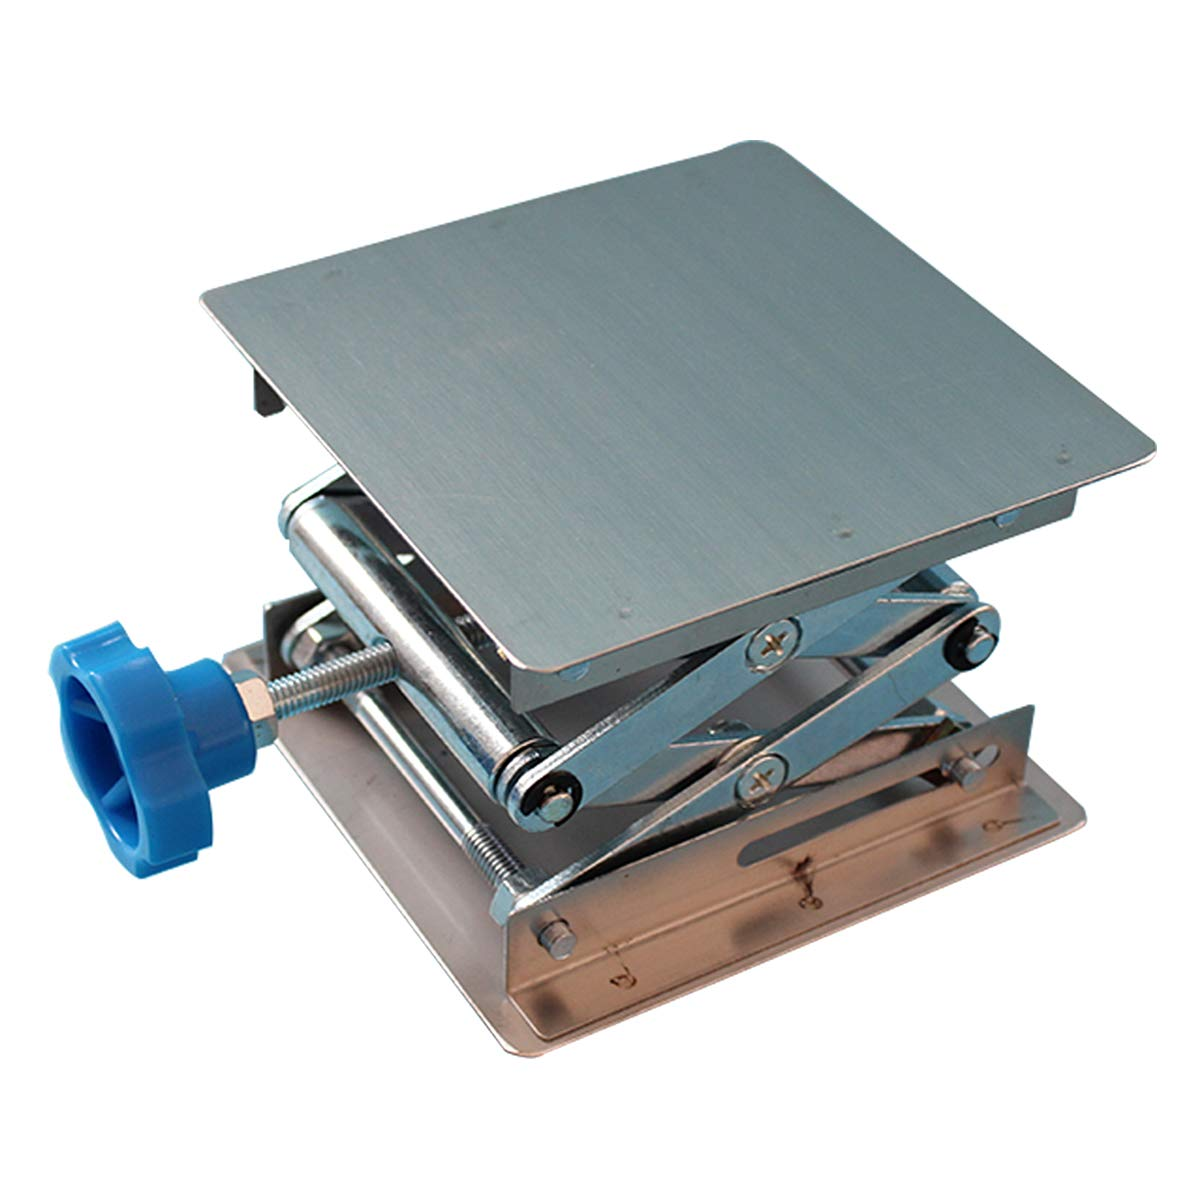 Stainless Steel Lab Jack Stand Table Lift Laboratory Jiffy Jack 4'' x 4''